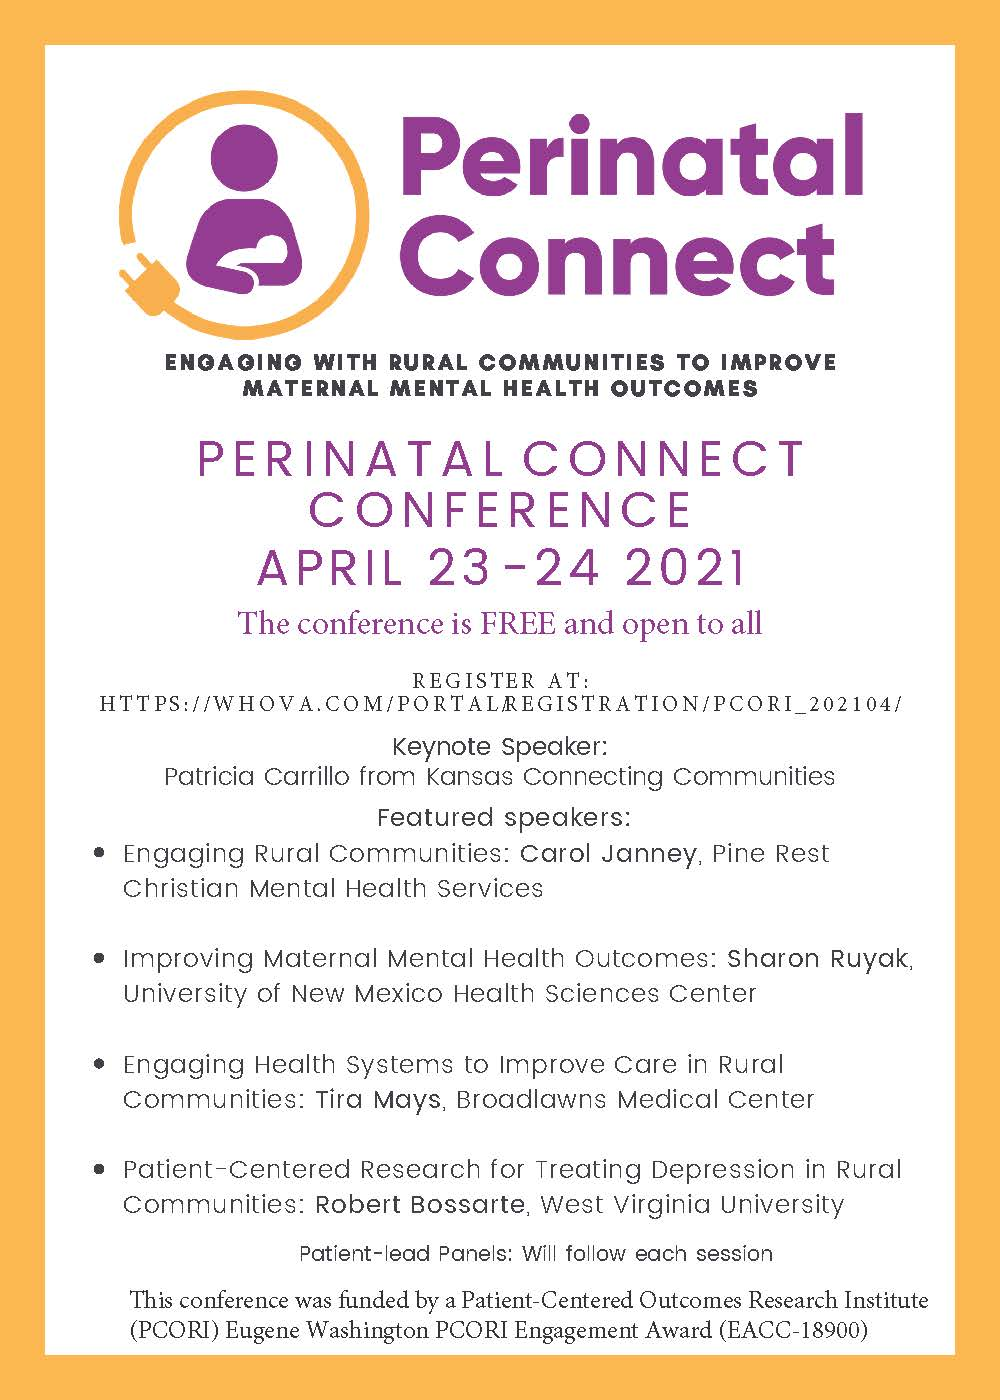 Perinatal Connect: Engaging with Rural Communities to Improve Maternal Mental Health Outcomes, April 23-24, 2021. Register for this free conference at https://whova.com/portal/registration/pcori_202104/